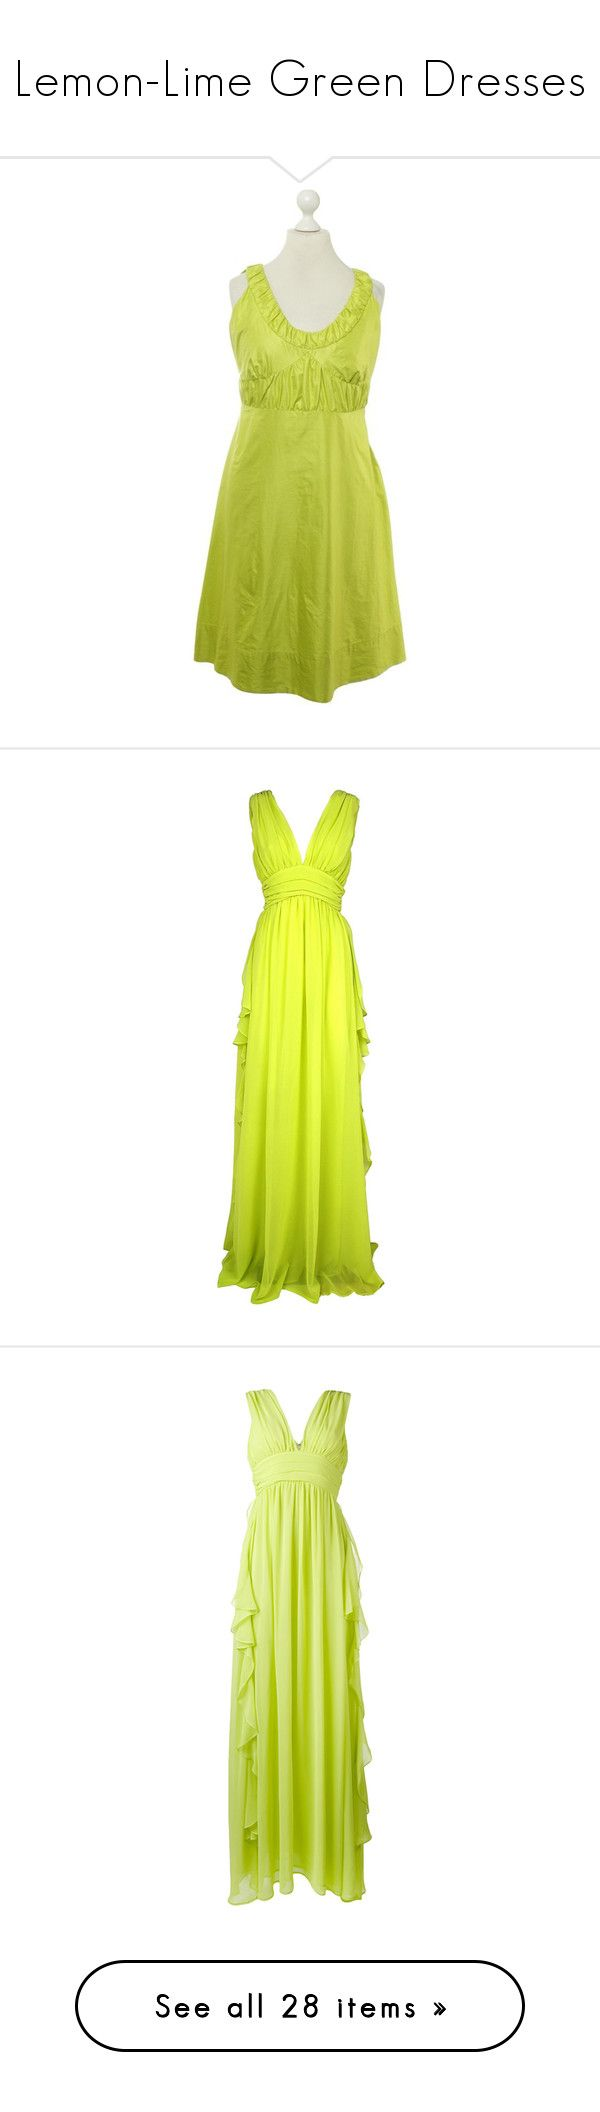 """""""Lemon-Lime Green Dresses"""" by tegan-b-riley on Polyvore featuring dresses, green, side zipper dress, green summer dress, summer dresses, pre owned dresses, green dress, gowns, verde and womenclothingdresses"""